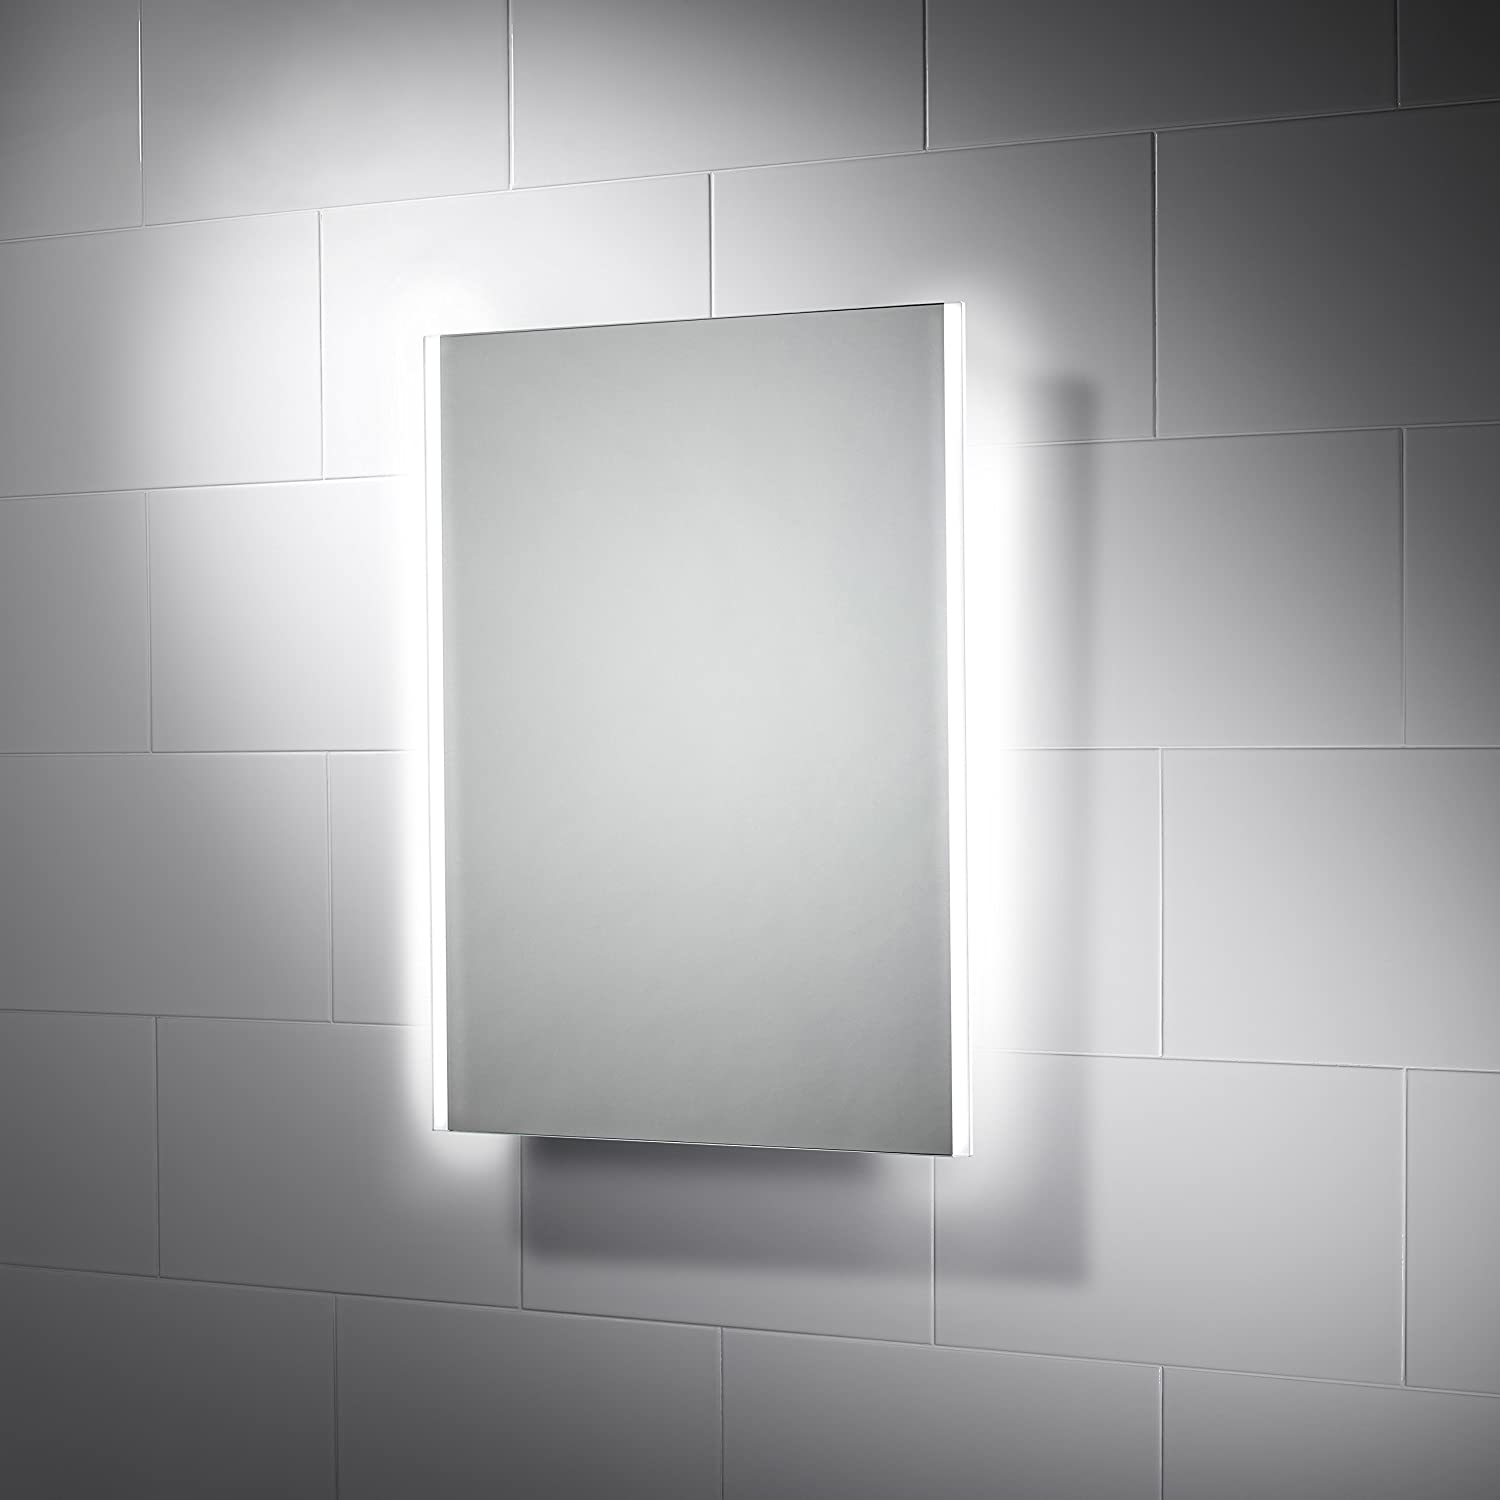 Pebble Grey 390 x 500 mm Bathroom Mirror Bailey LED Illuminated Bathroom Mirror with Shaver Socket & Demister Pad